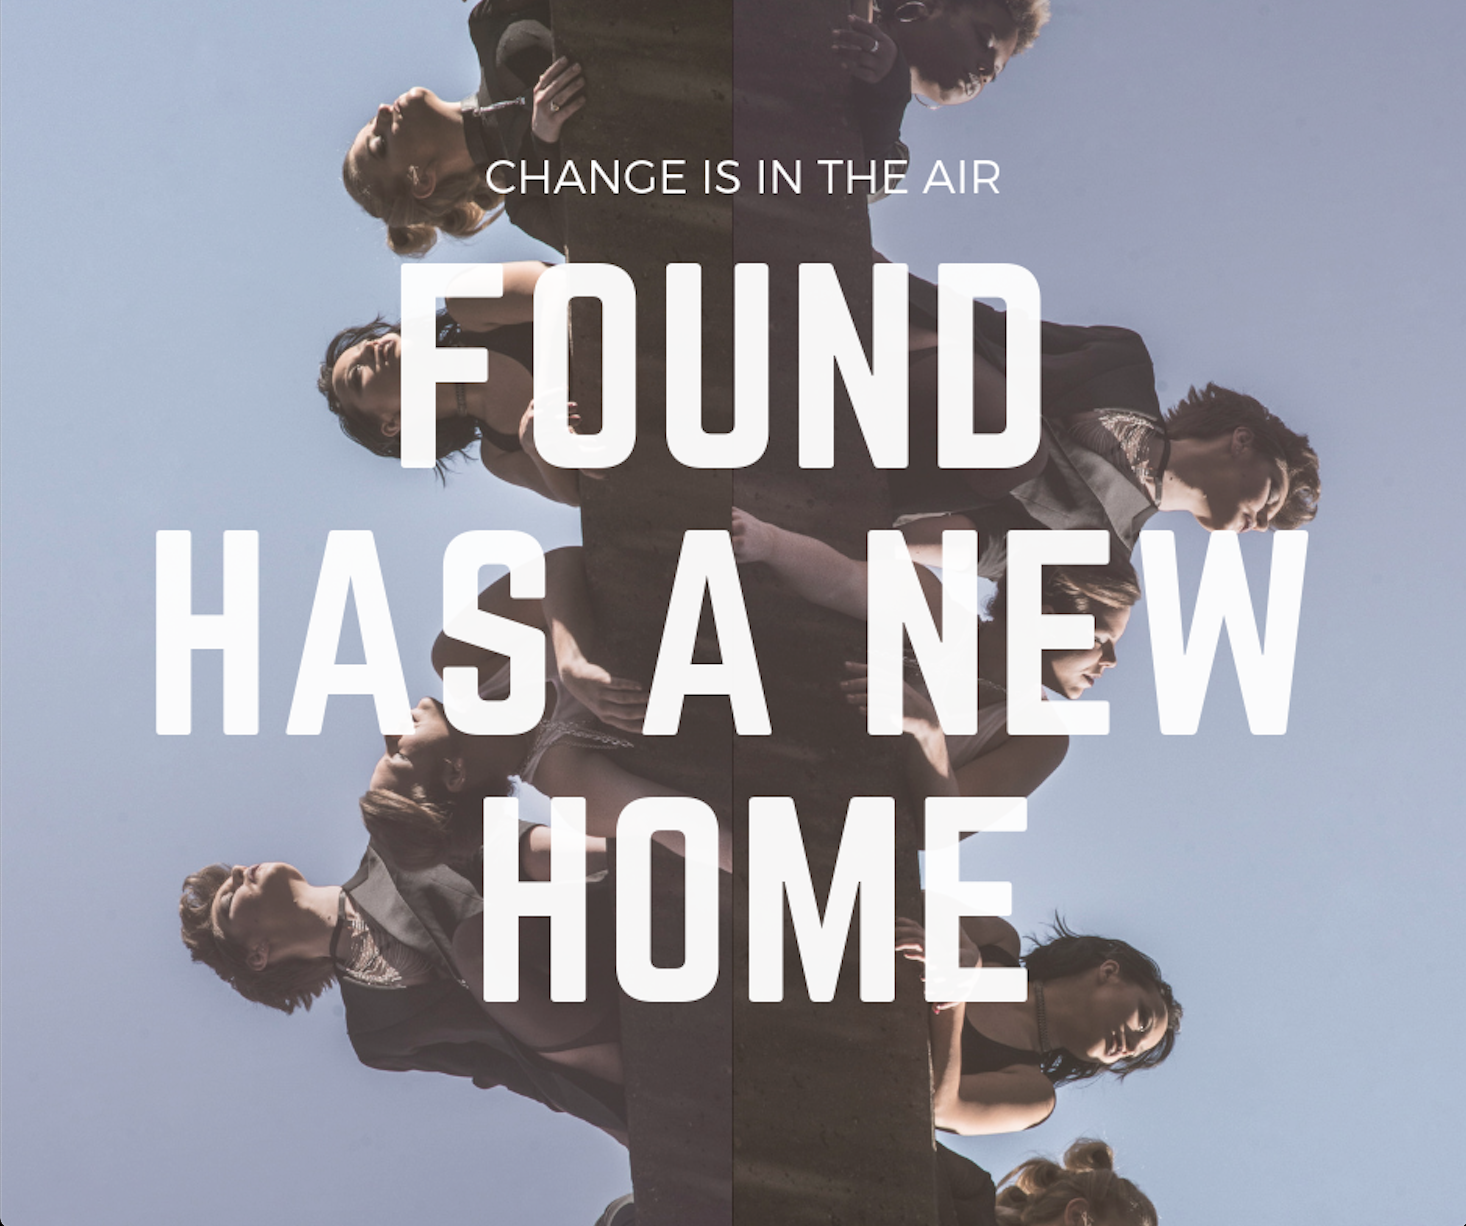 Upcoming Events - May 22nd- Nashville Arts & Business Council Arts Immersion Event at Fort HoustonJuly/August 2019- Grande Opening of Found's new space in Wedgewood/Houston area of Nashville!